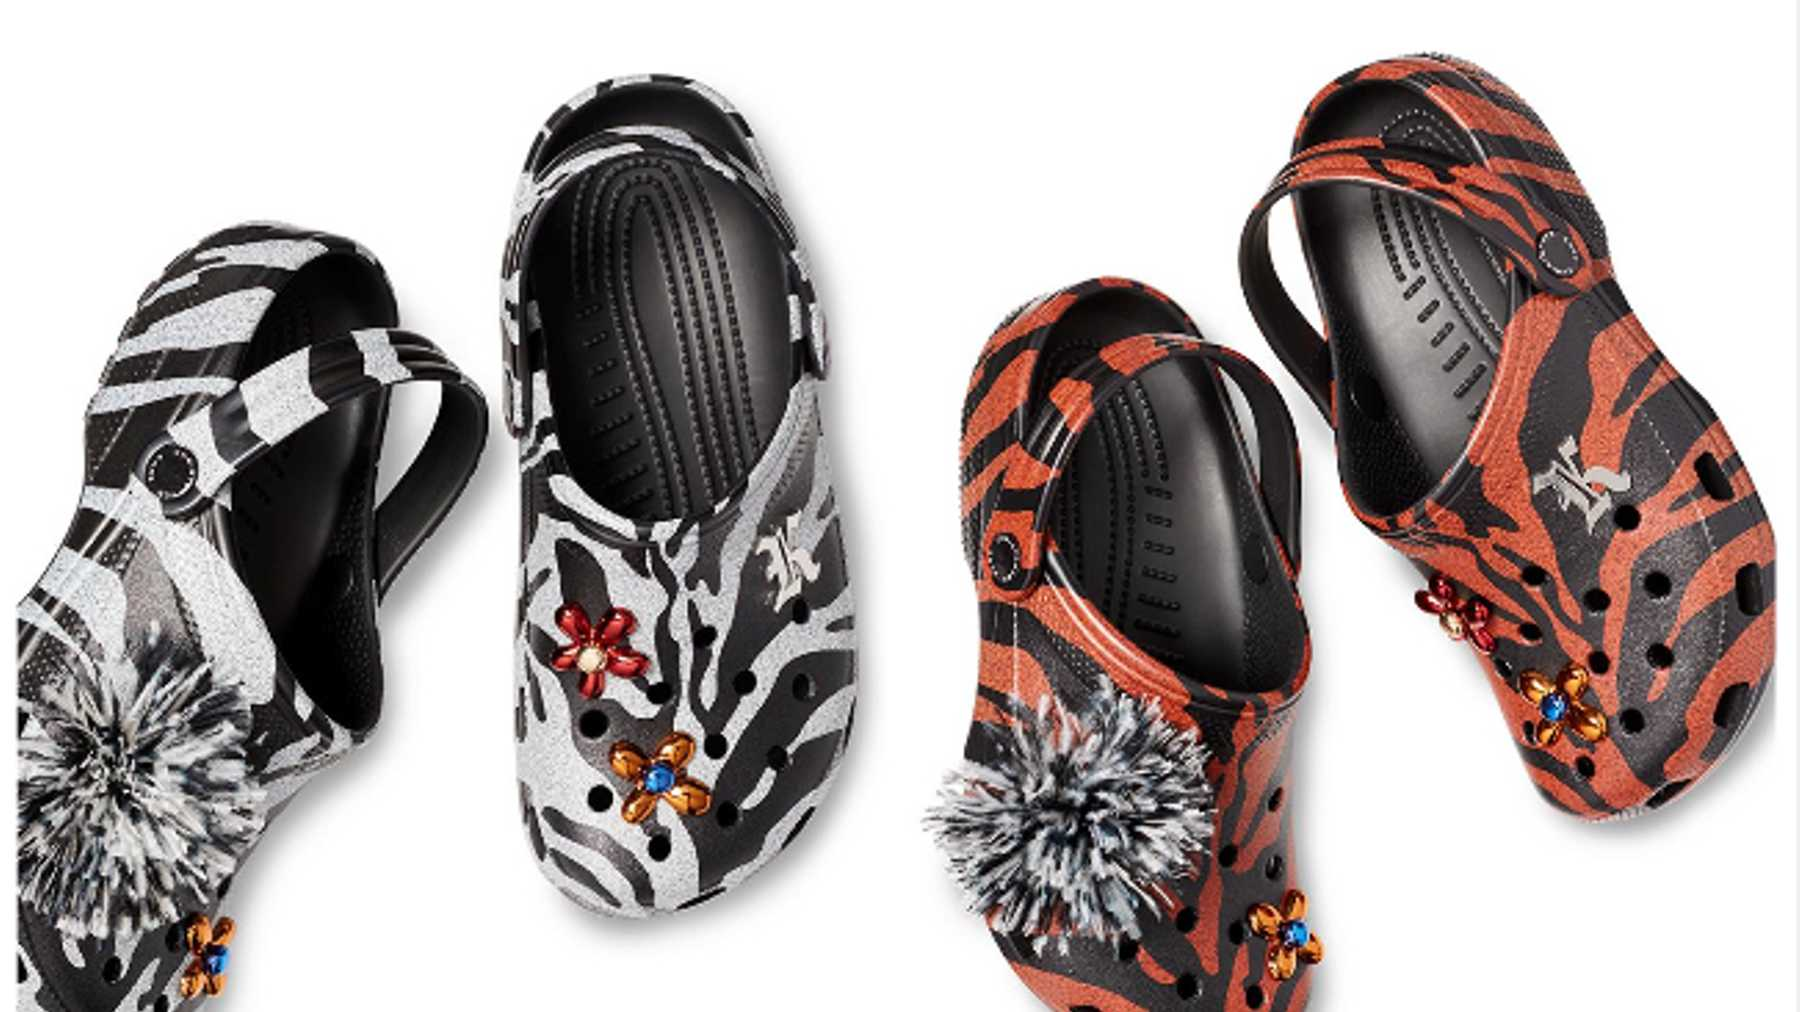 42f7b5f5b Christopher Kane Is Treating Us To Another Crocs Collection